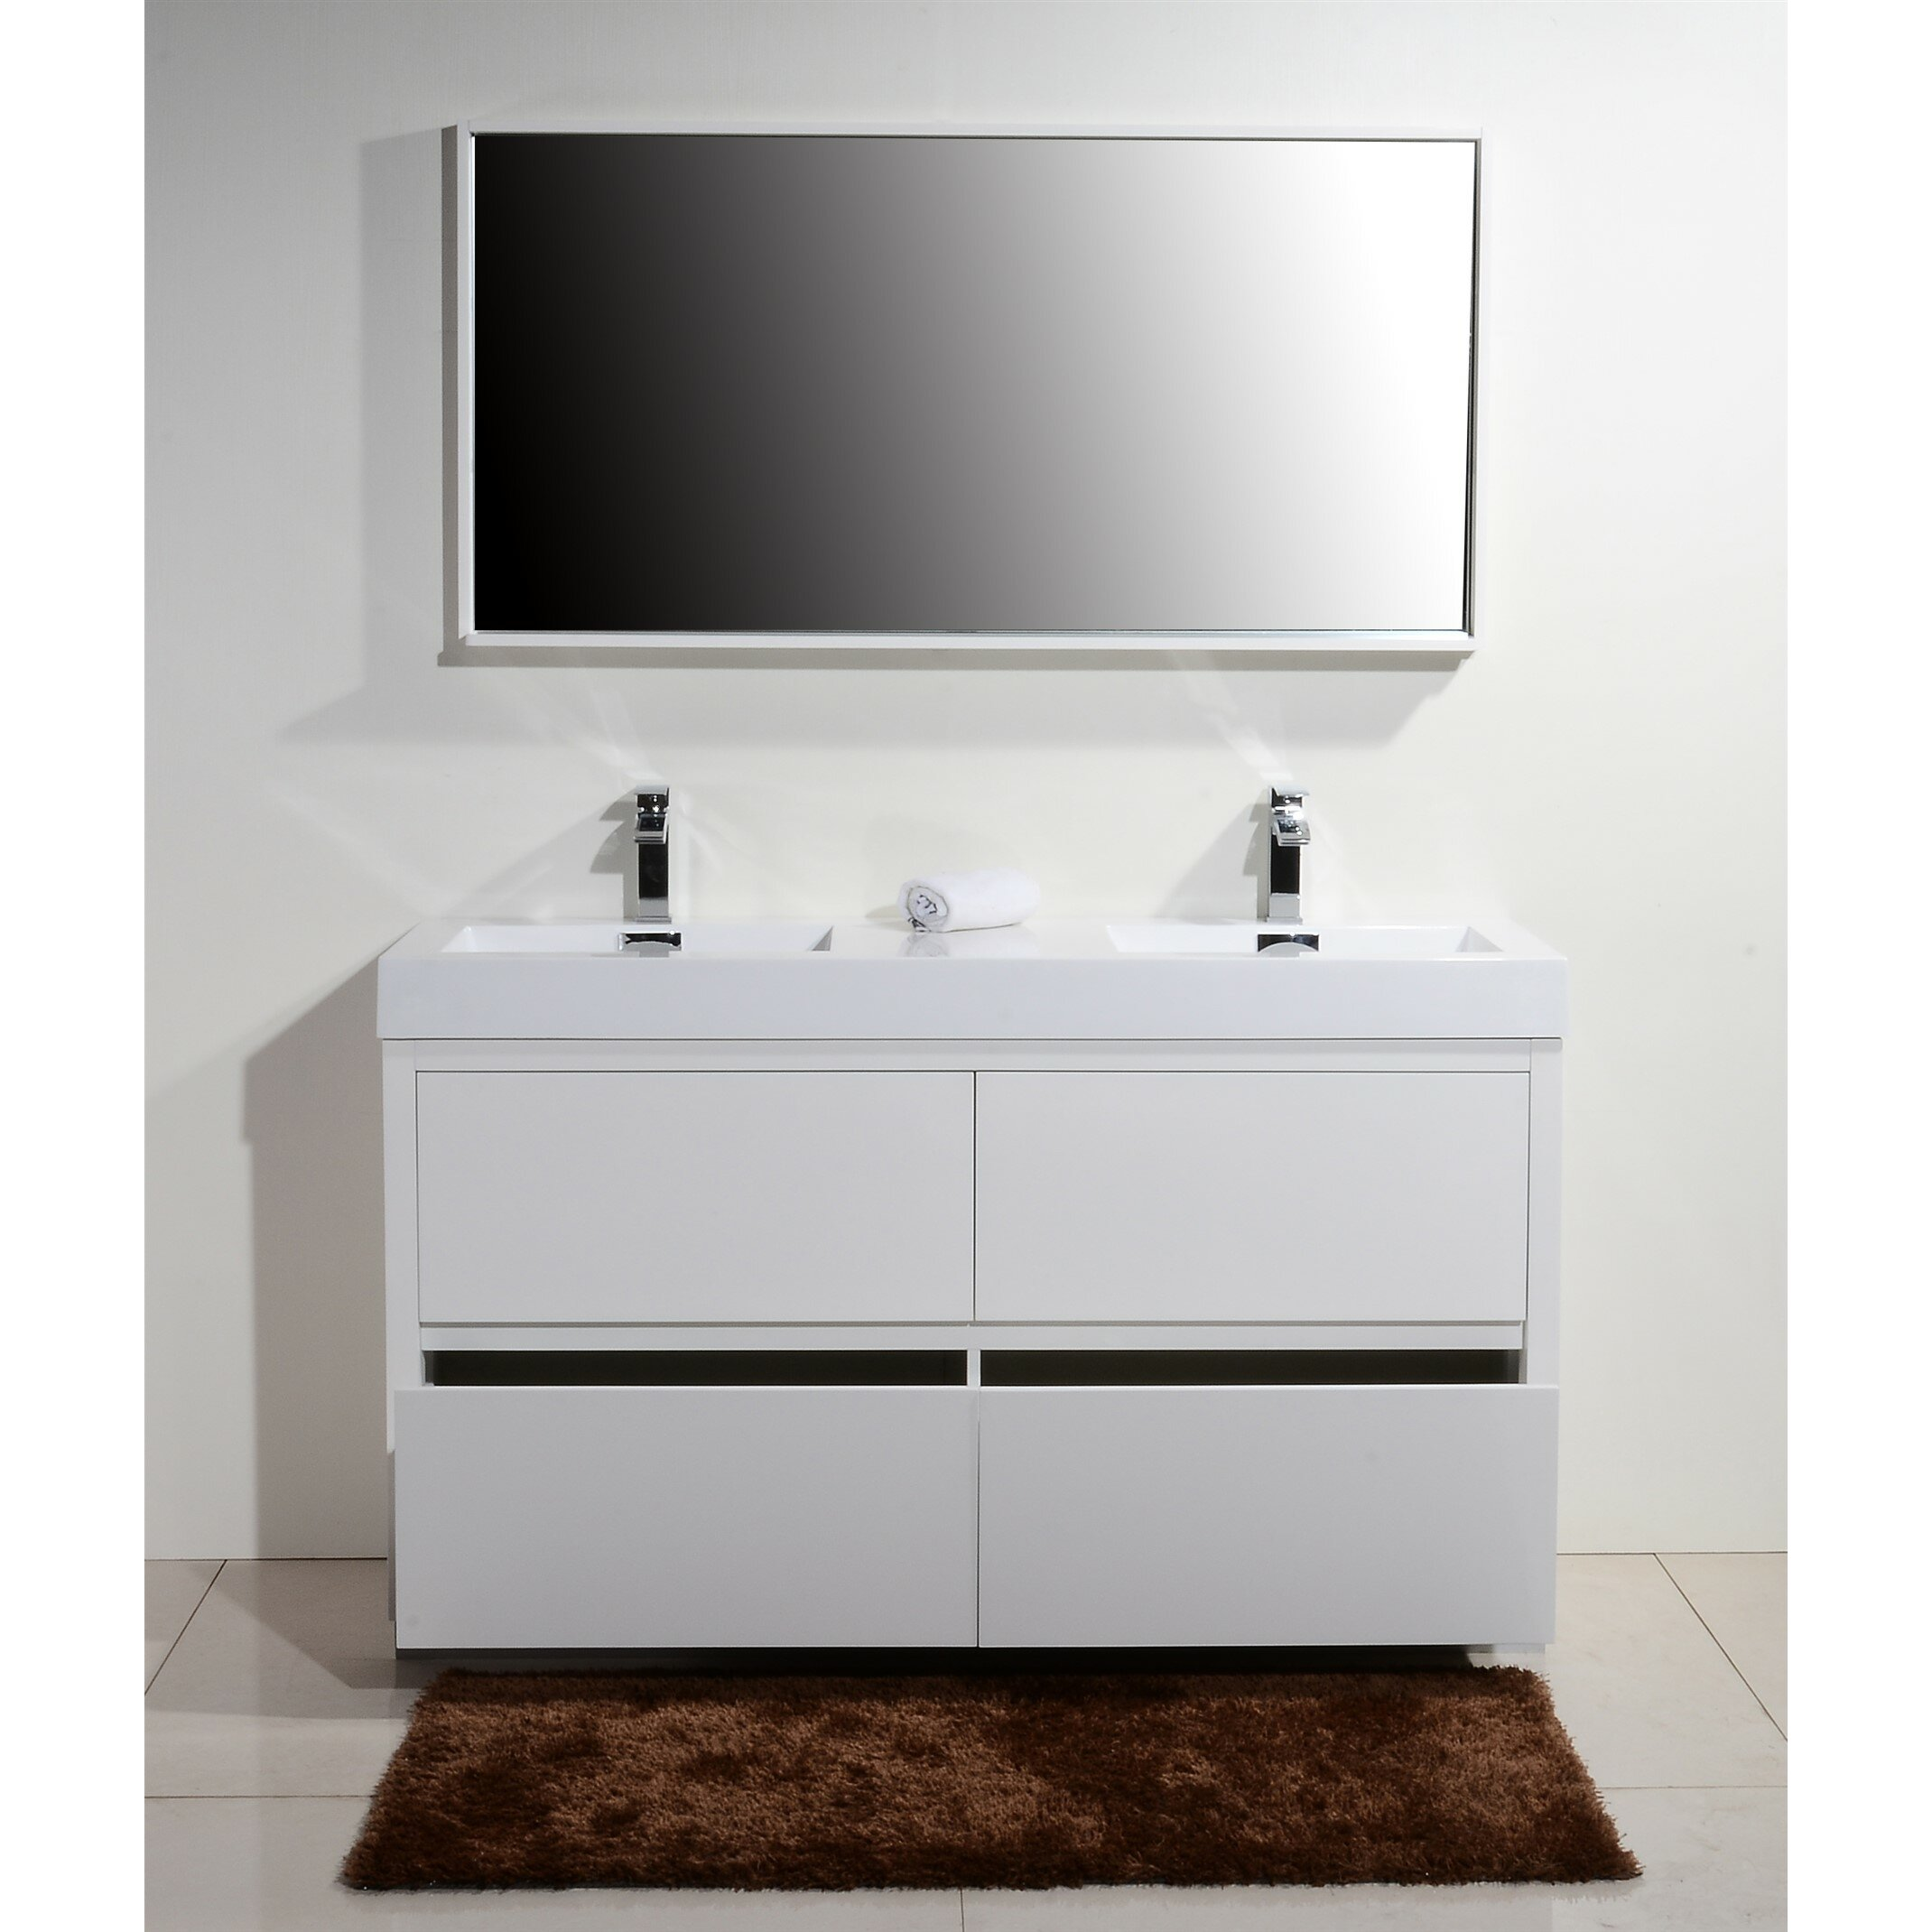 Kube Bath Bliss 60 amp quot  Double Free Standing Modern Bathroom Vanity Set. Kube Bath Bliss 60 quot  Double Free Standing Modern Bathroom Vanity